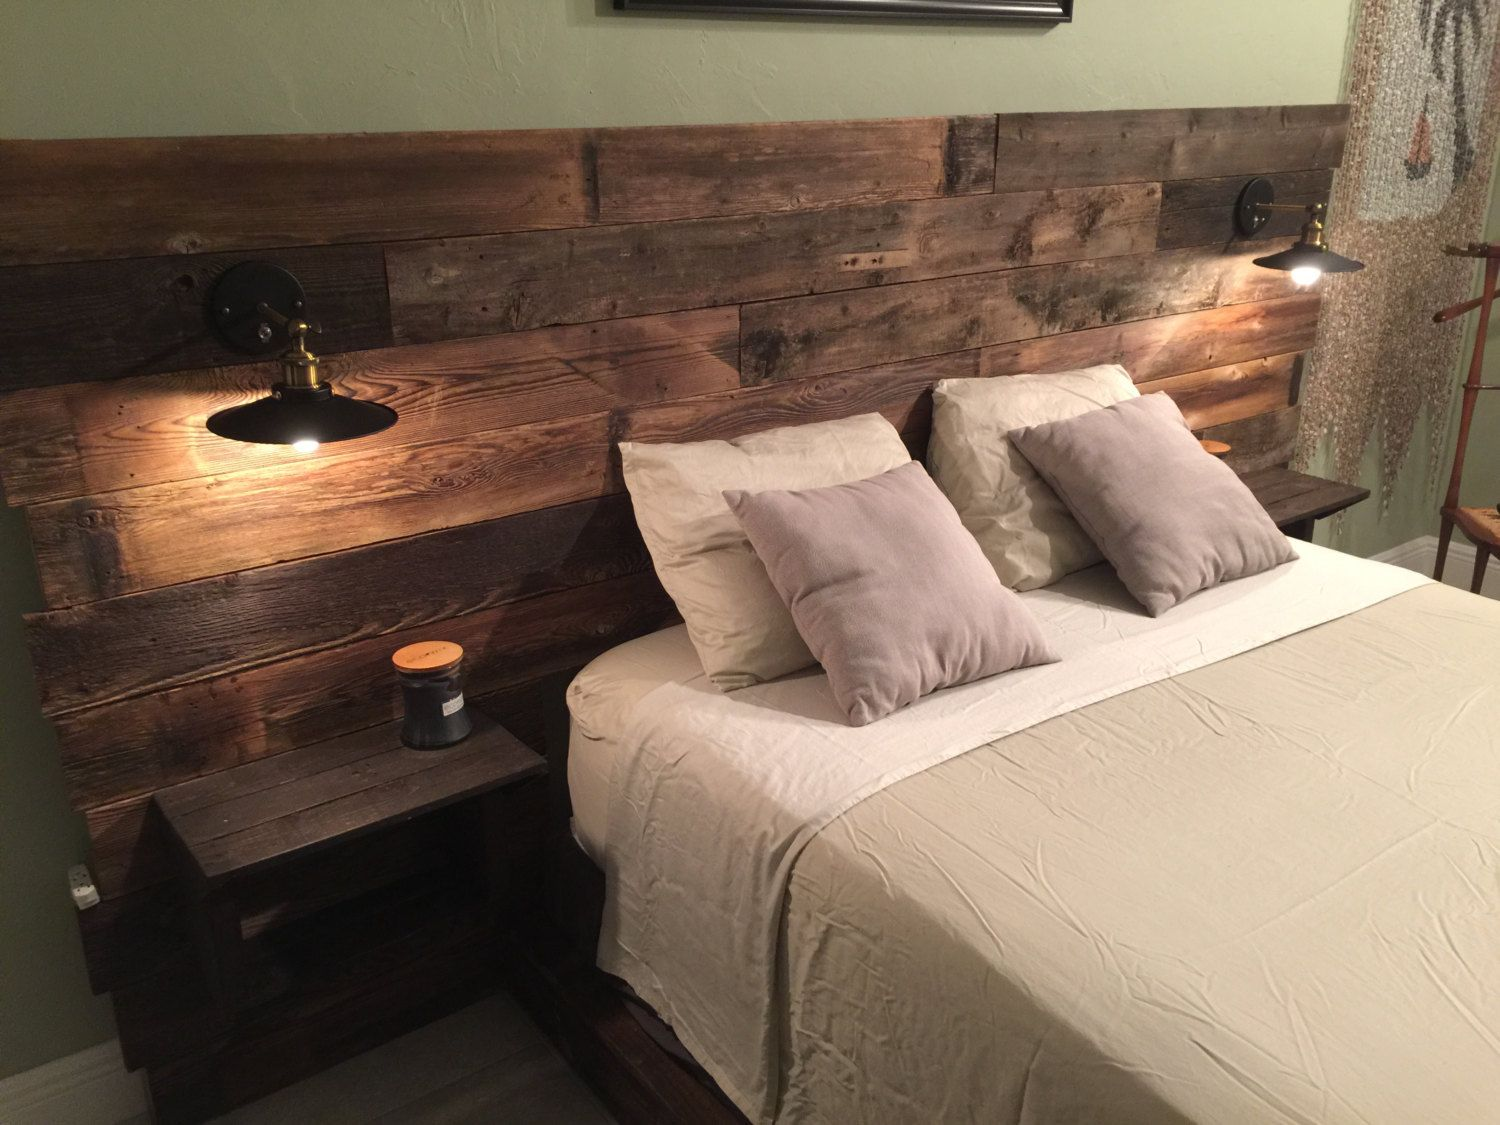 Rustic Headboard Reclaimed Headboard Head board with Lights Built In Shelf Rustic Lighting Queen Size Headboard King Size Headbaord & Rustic Wood Headboard Distressed Headboard Reclaim Cabinets USB ...